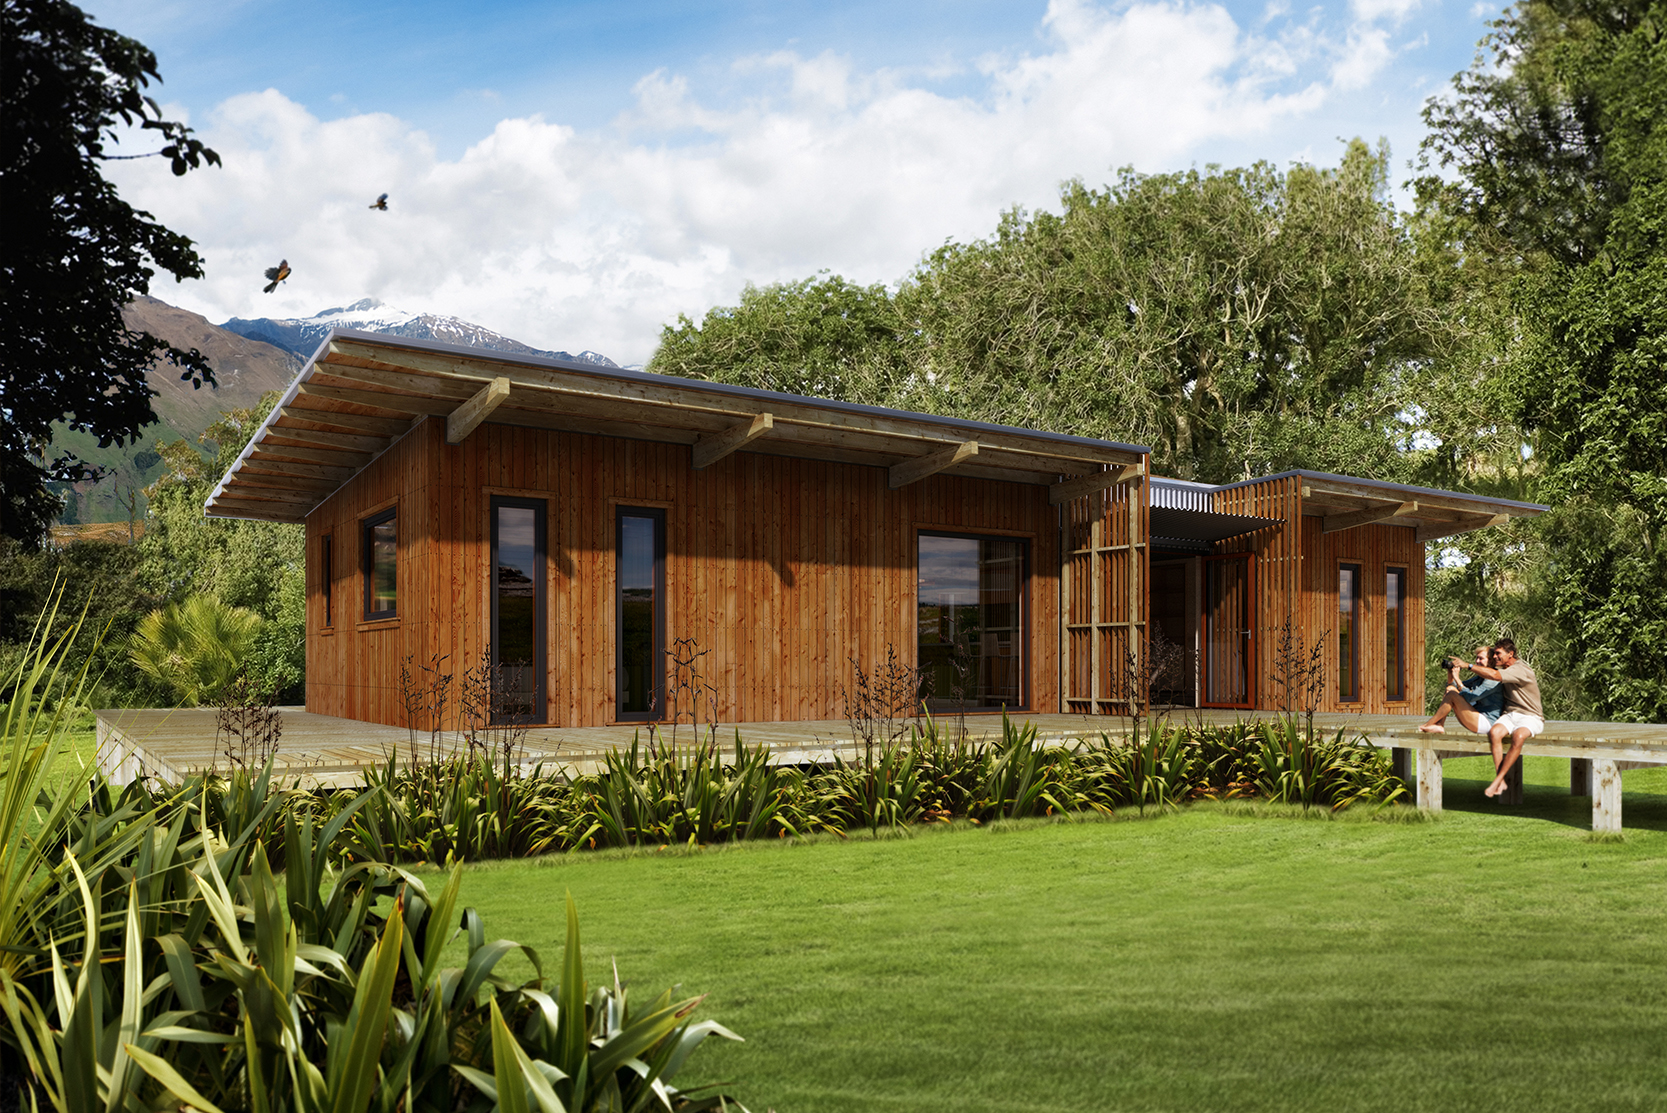 Based on original award-winning Meridian First Light this 100 square meter, 2 bedroom home is more spacious, better performing and even more affordable.